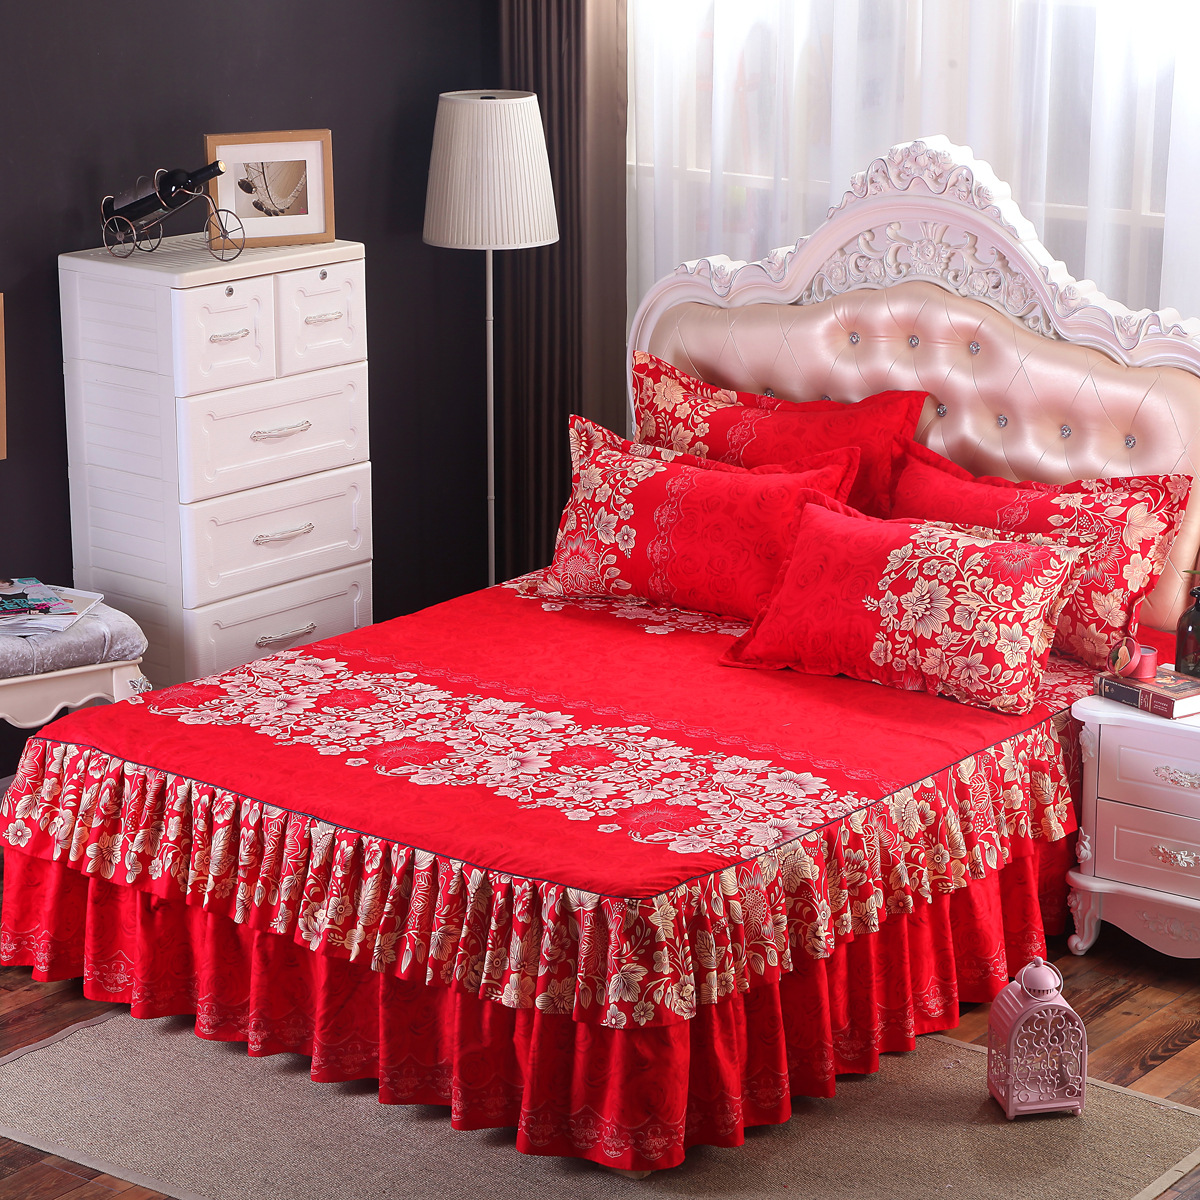 Permalink to Bed skirt high quality cotton polyester purple flower bedspread  bed matter cover   bedding bed skirts bed cover